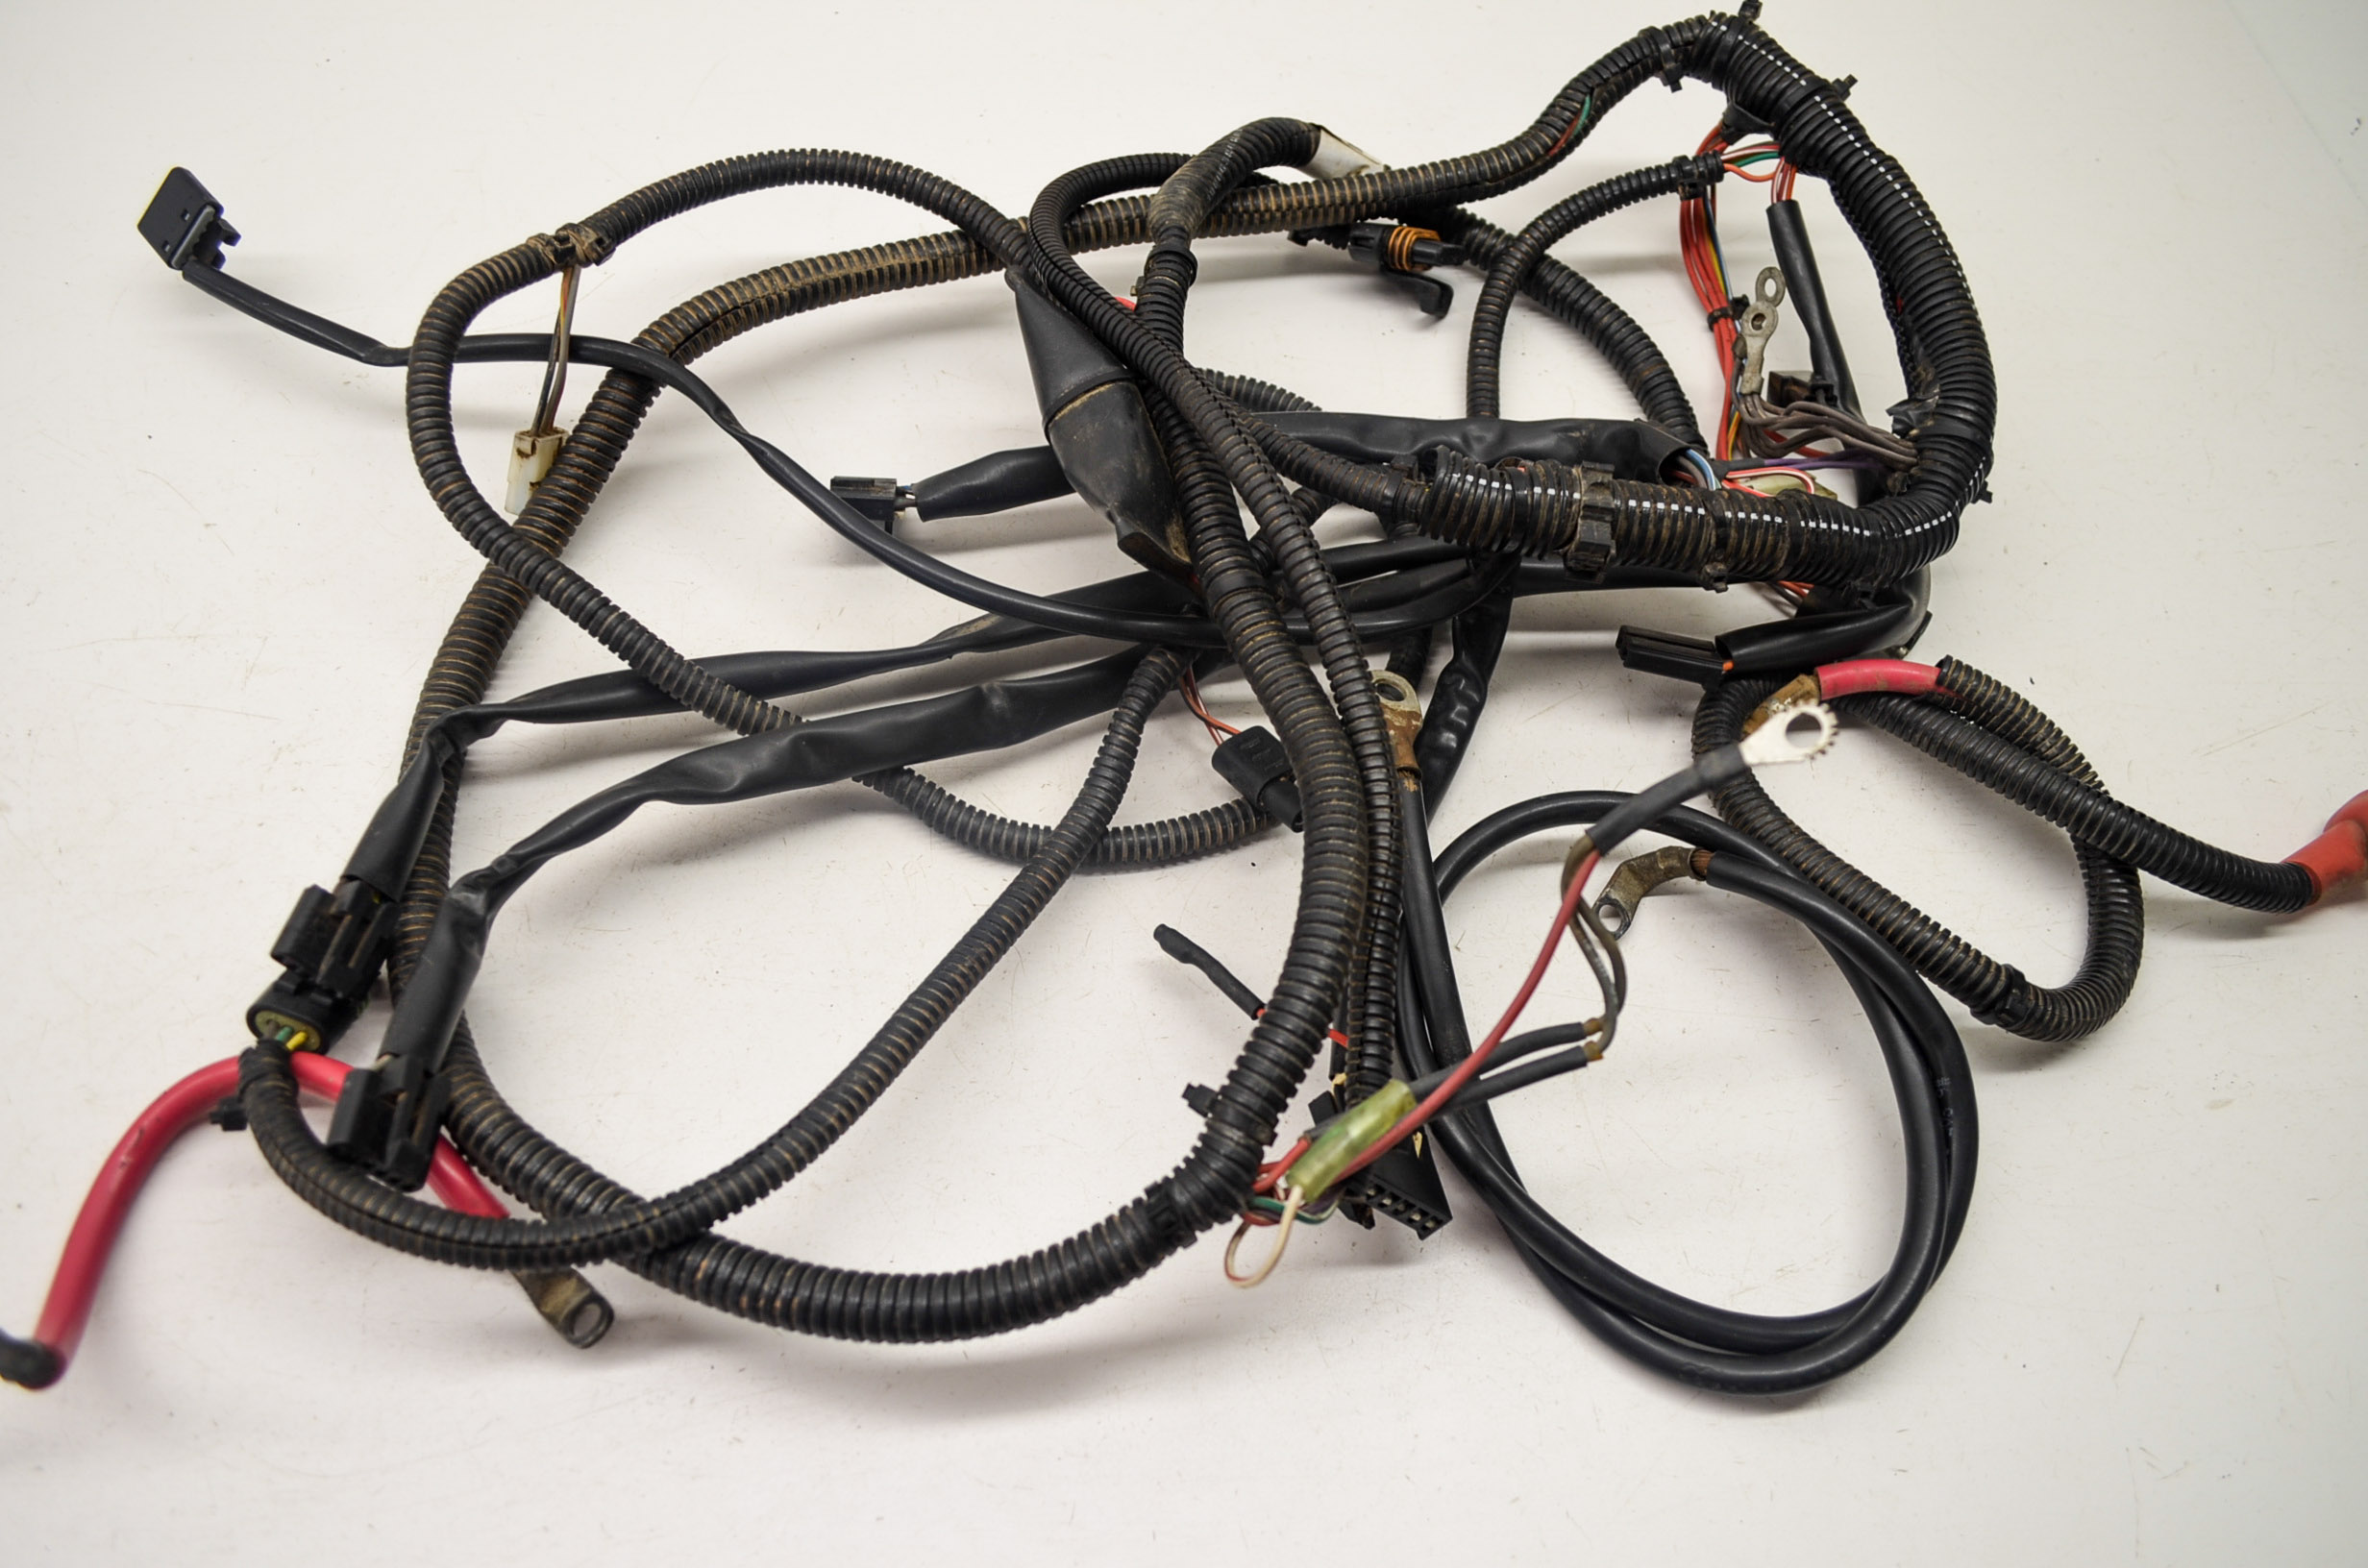 Trail Boss Wiring Harness Diy Enthusiasts Diagrams Blizzard 04 Polaris 330 Wire Electrical Ebay Rh Com 14 Pin